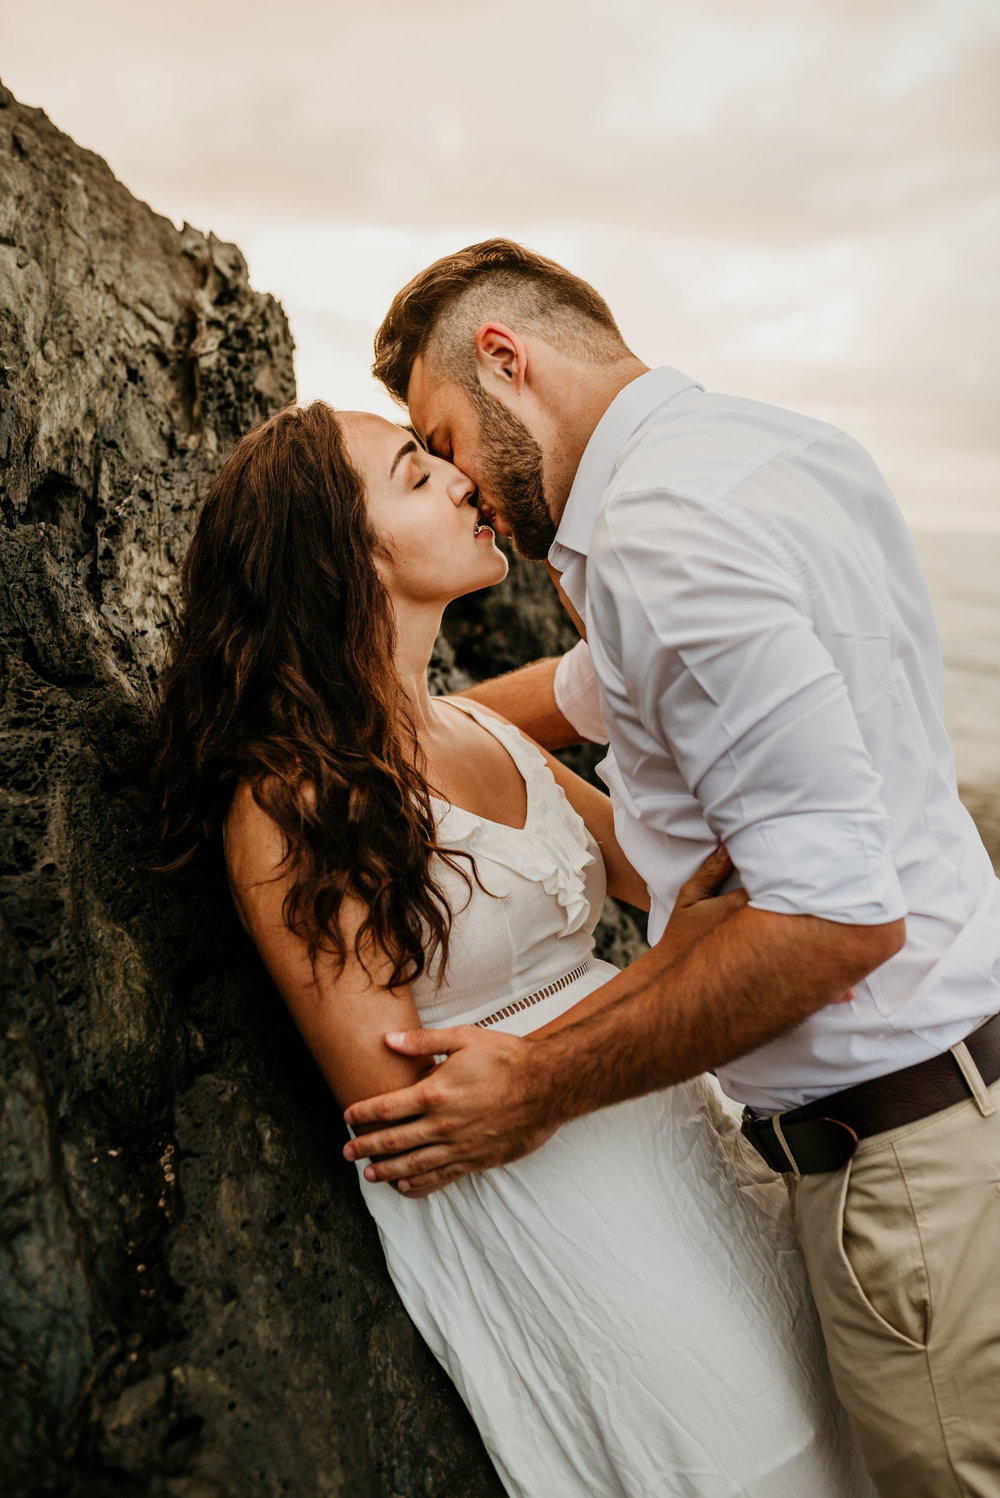 The Raw Photographer - Cairns Wedding Photographer - Engaged Engagement - Beach location - Candid Photography Queensland-30.jpg